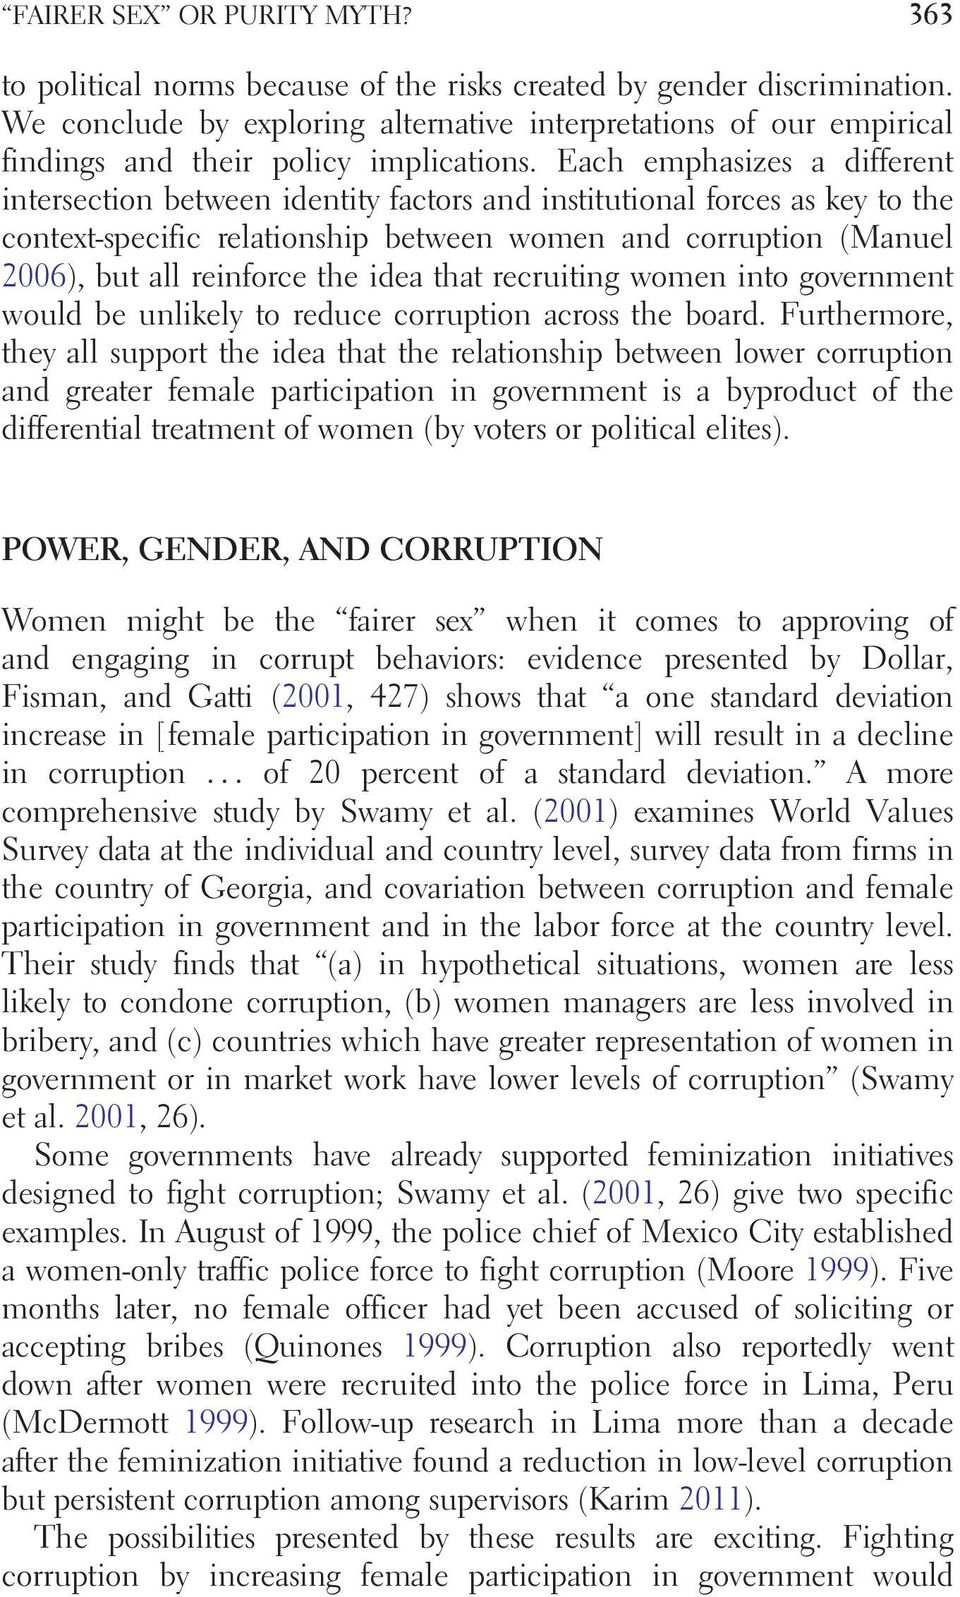 Each emphasizes a different intersection between identity factors and institutional forces as key to the context-specific relationship between women and corruption (Manuel 2006), but all reinforce